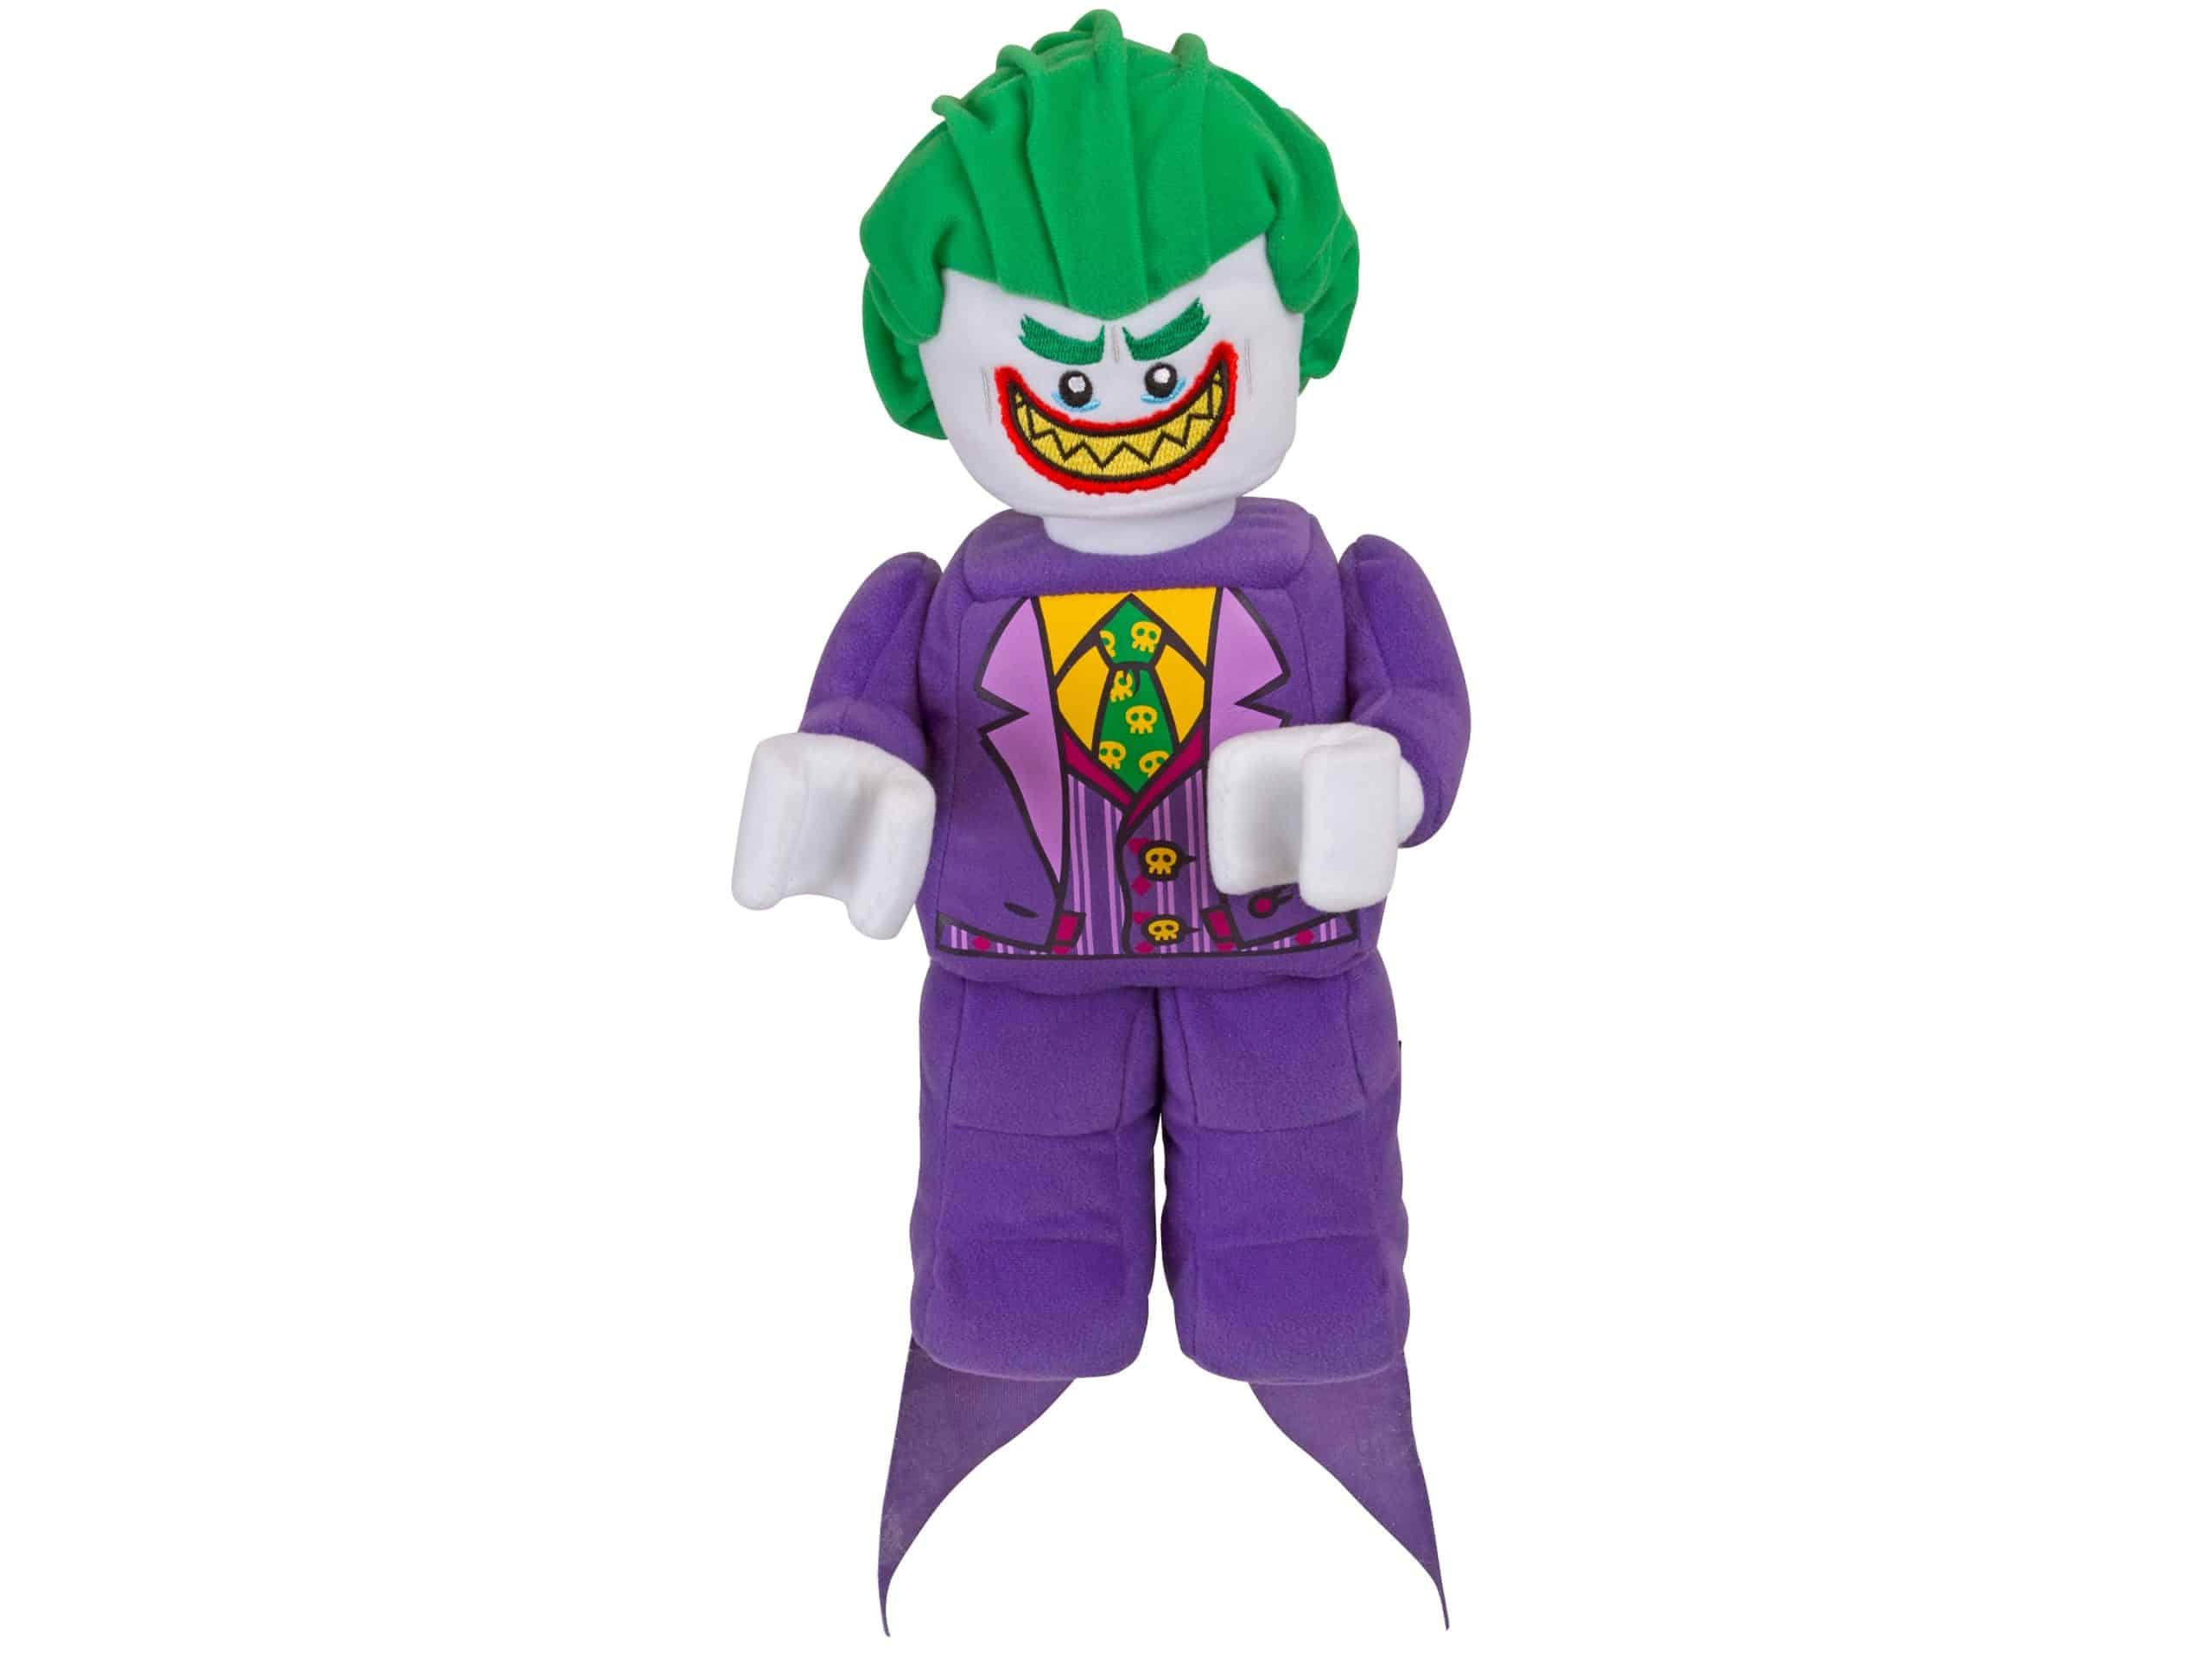 lego 853660 batman filmen jokeren plysminifigur scaled